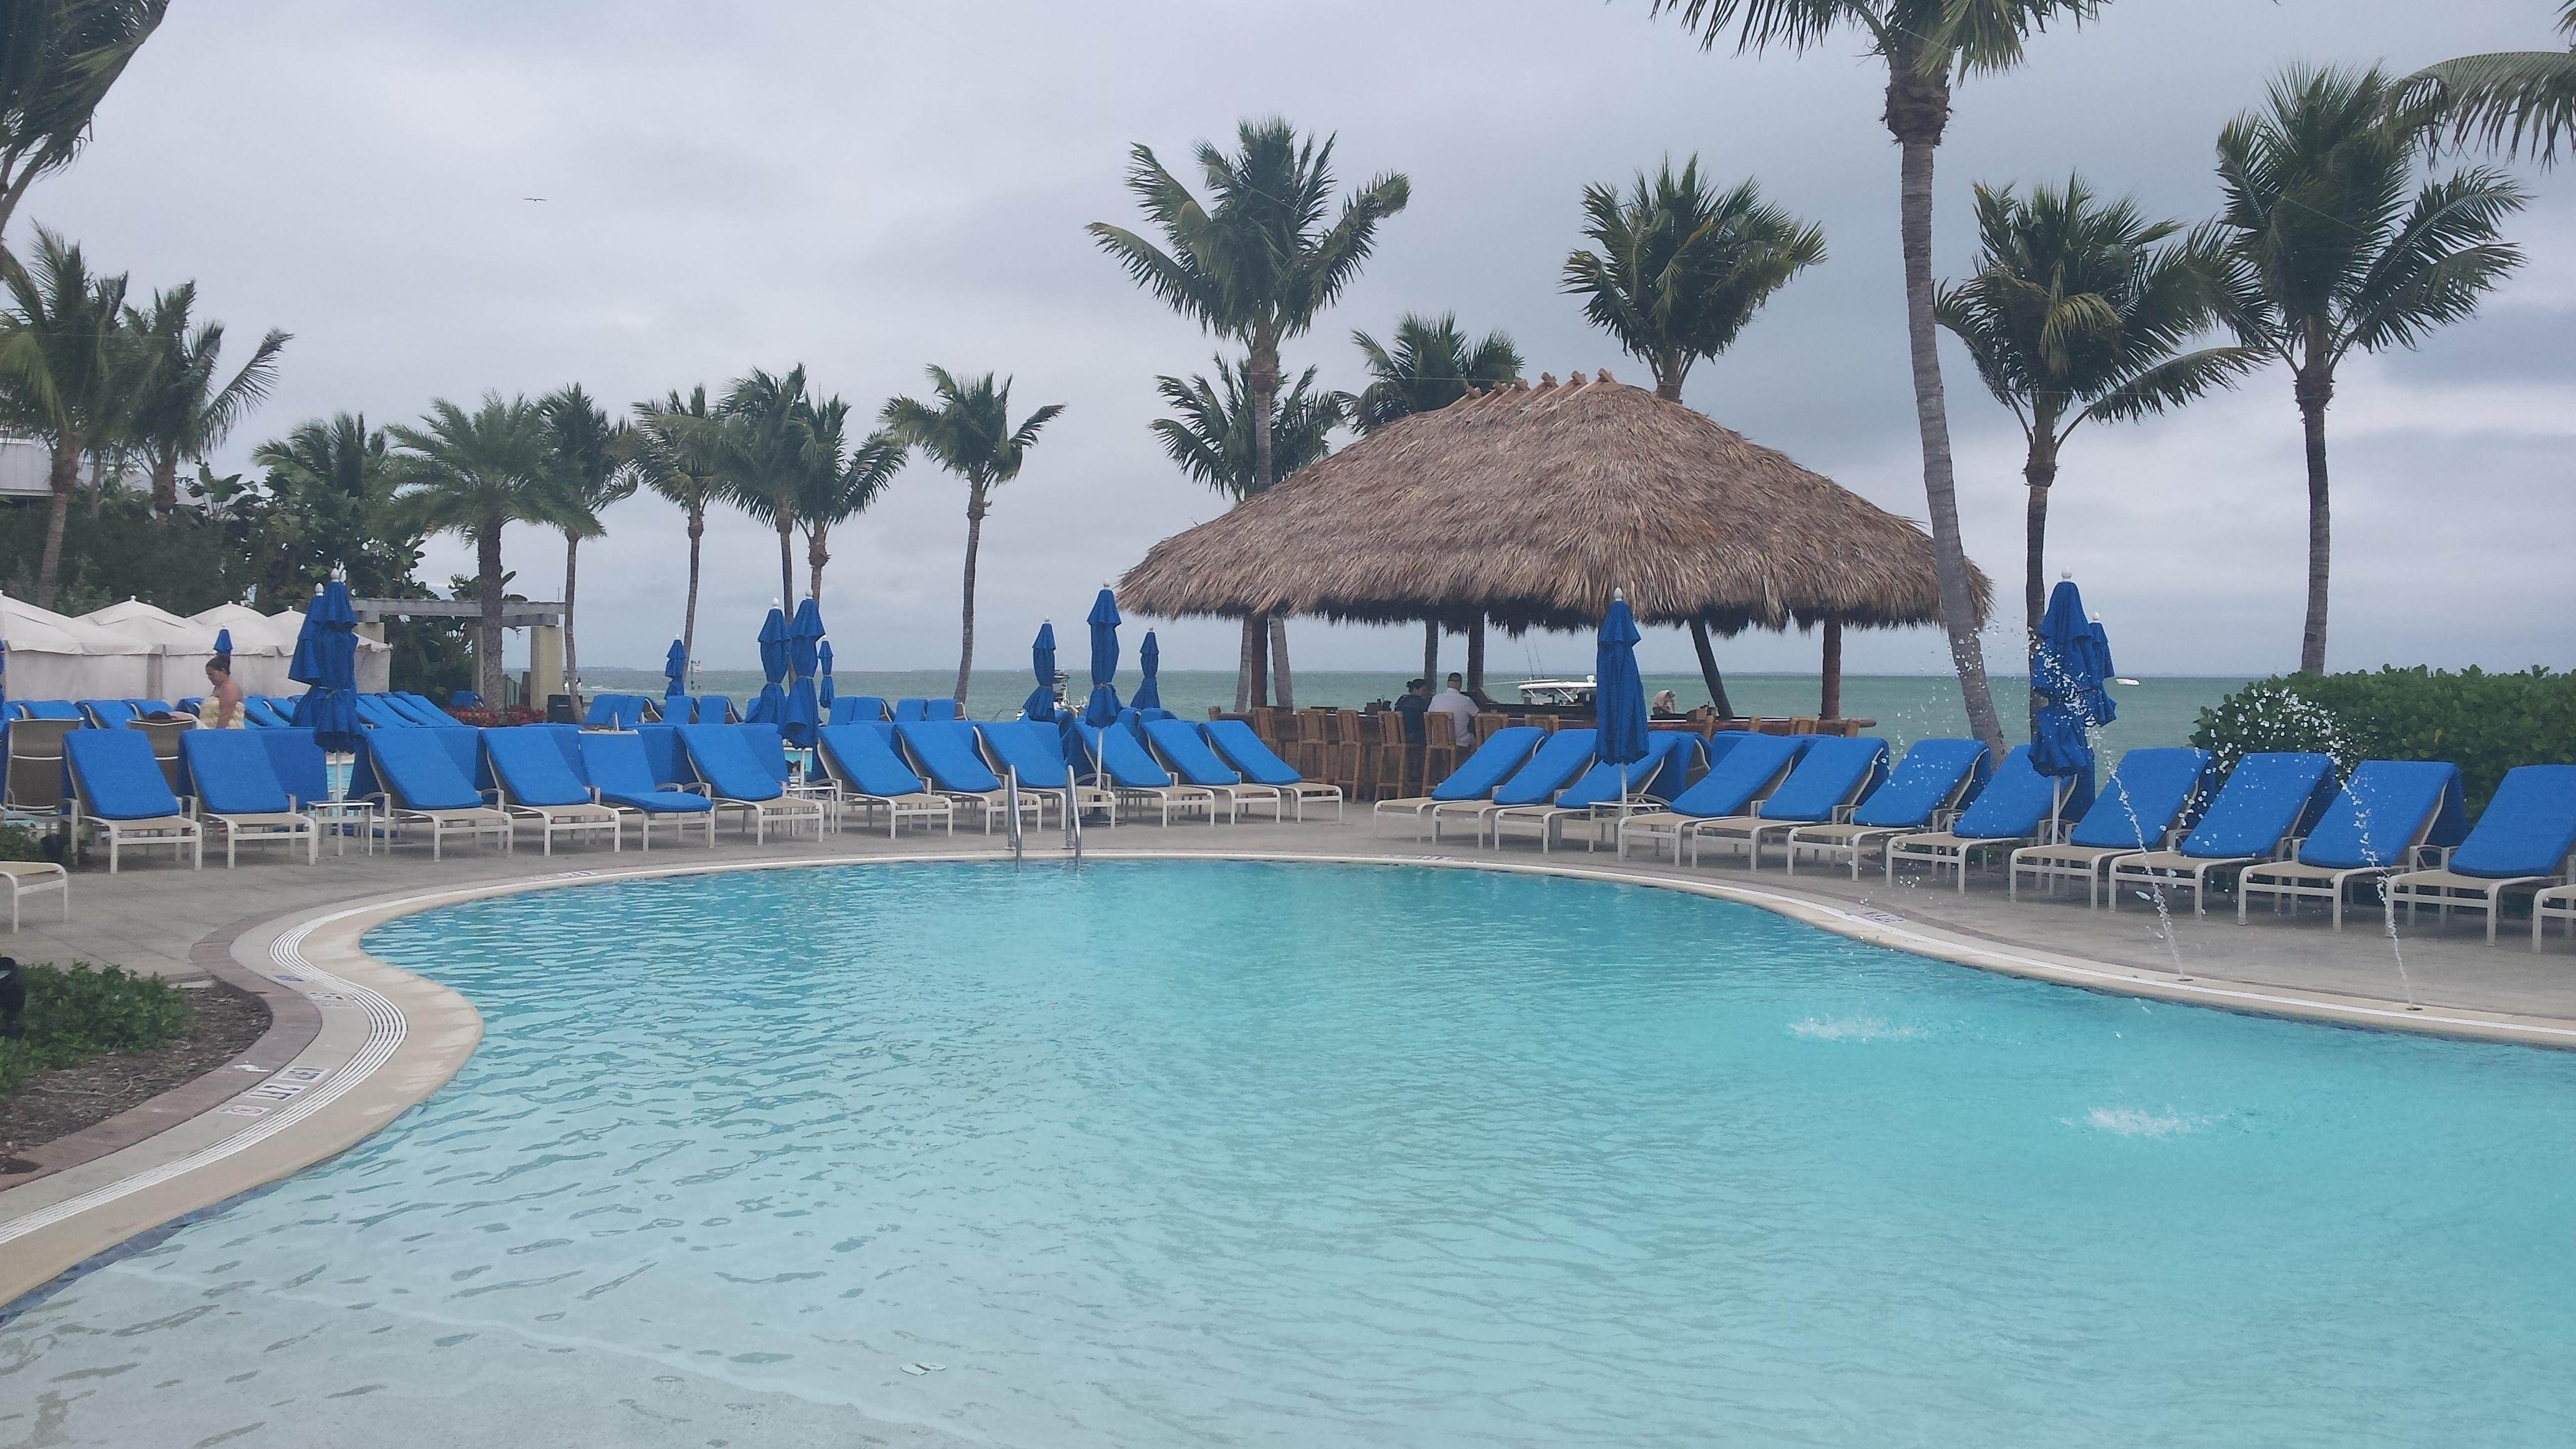 The Resort Pool Complex is home to the Pointe Restaurant, Crooked Snook Tiki Bar, three pools including H2Whoa! water slides.